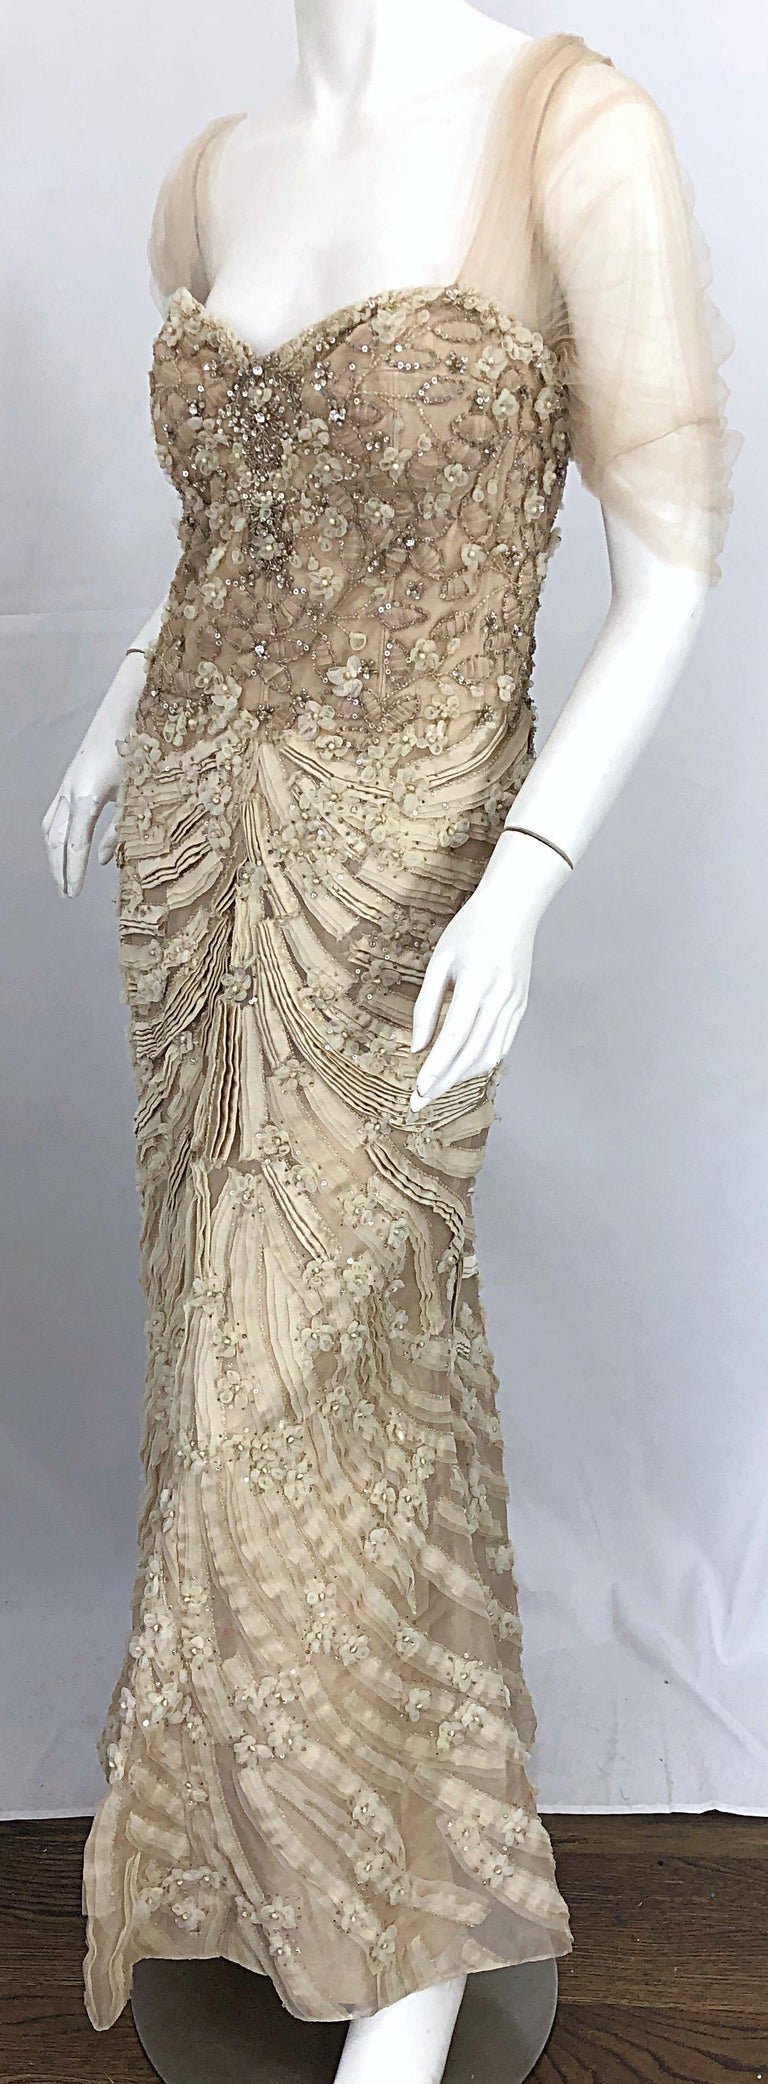 Monique Lhuillier Couture Size 10 / 12 Beige Rhinestone Beaded $12,000 Silk Gown For Sale 7